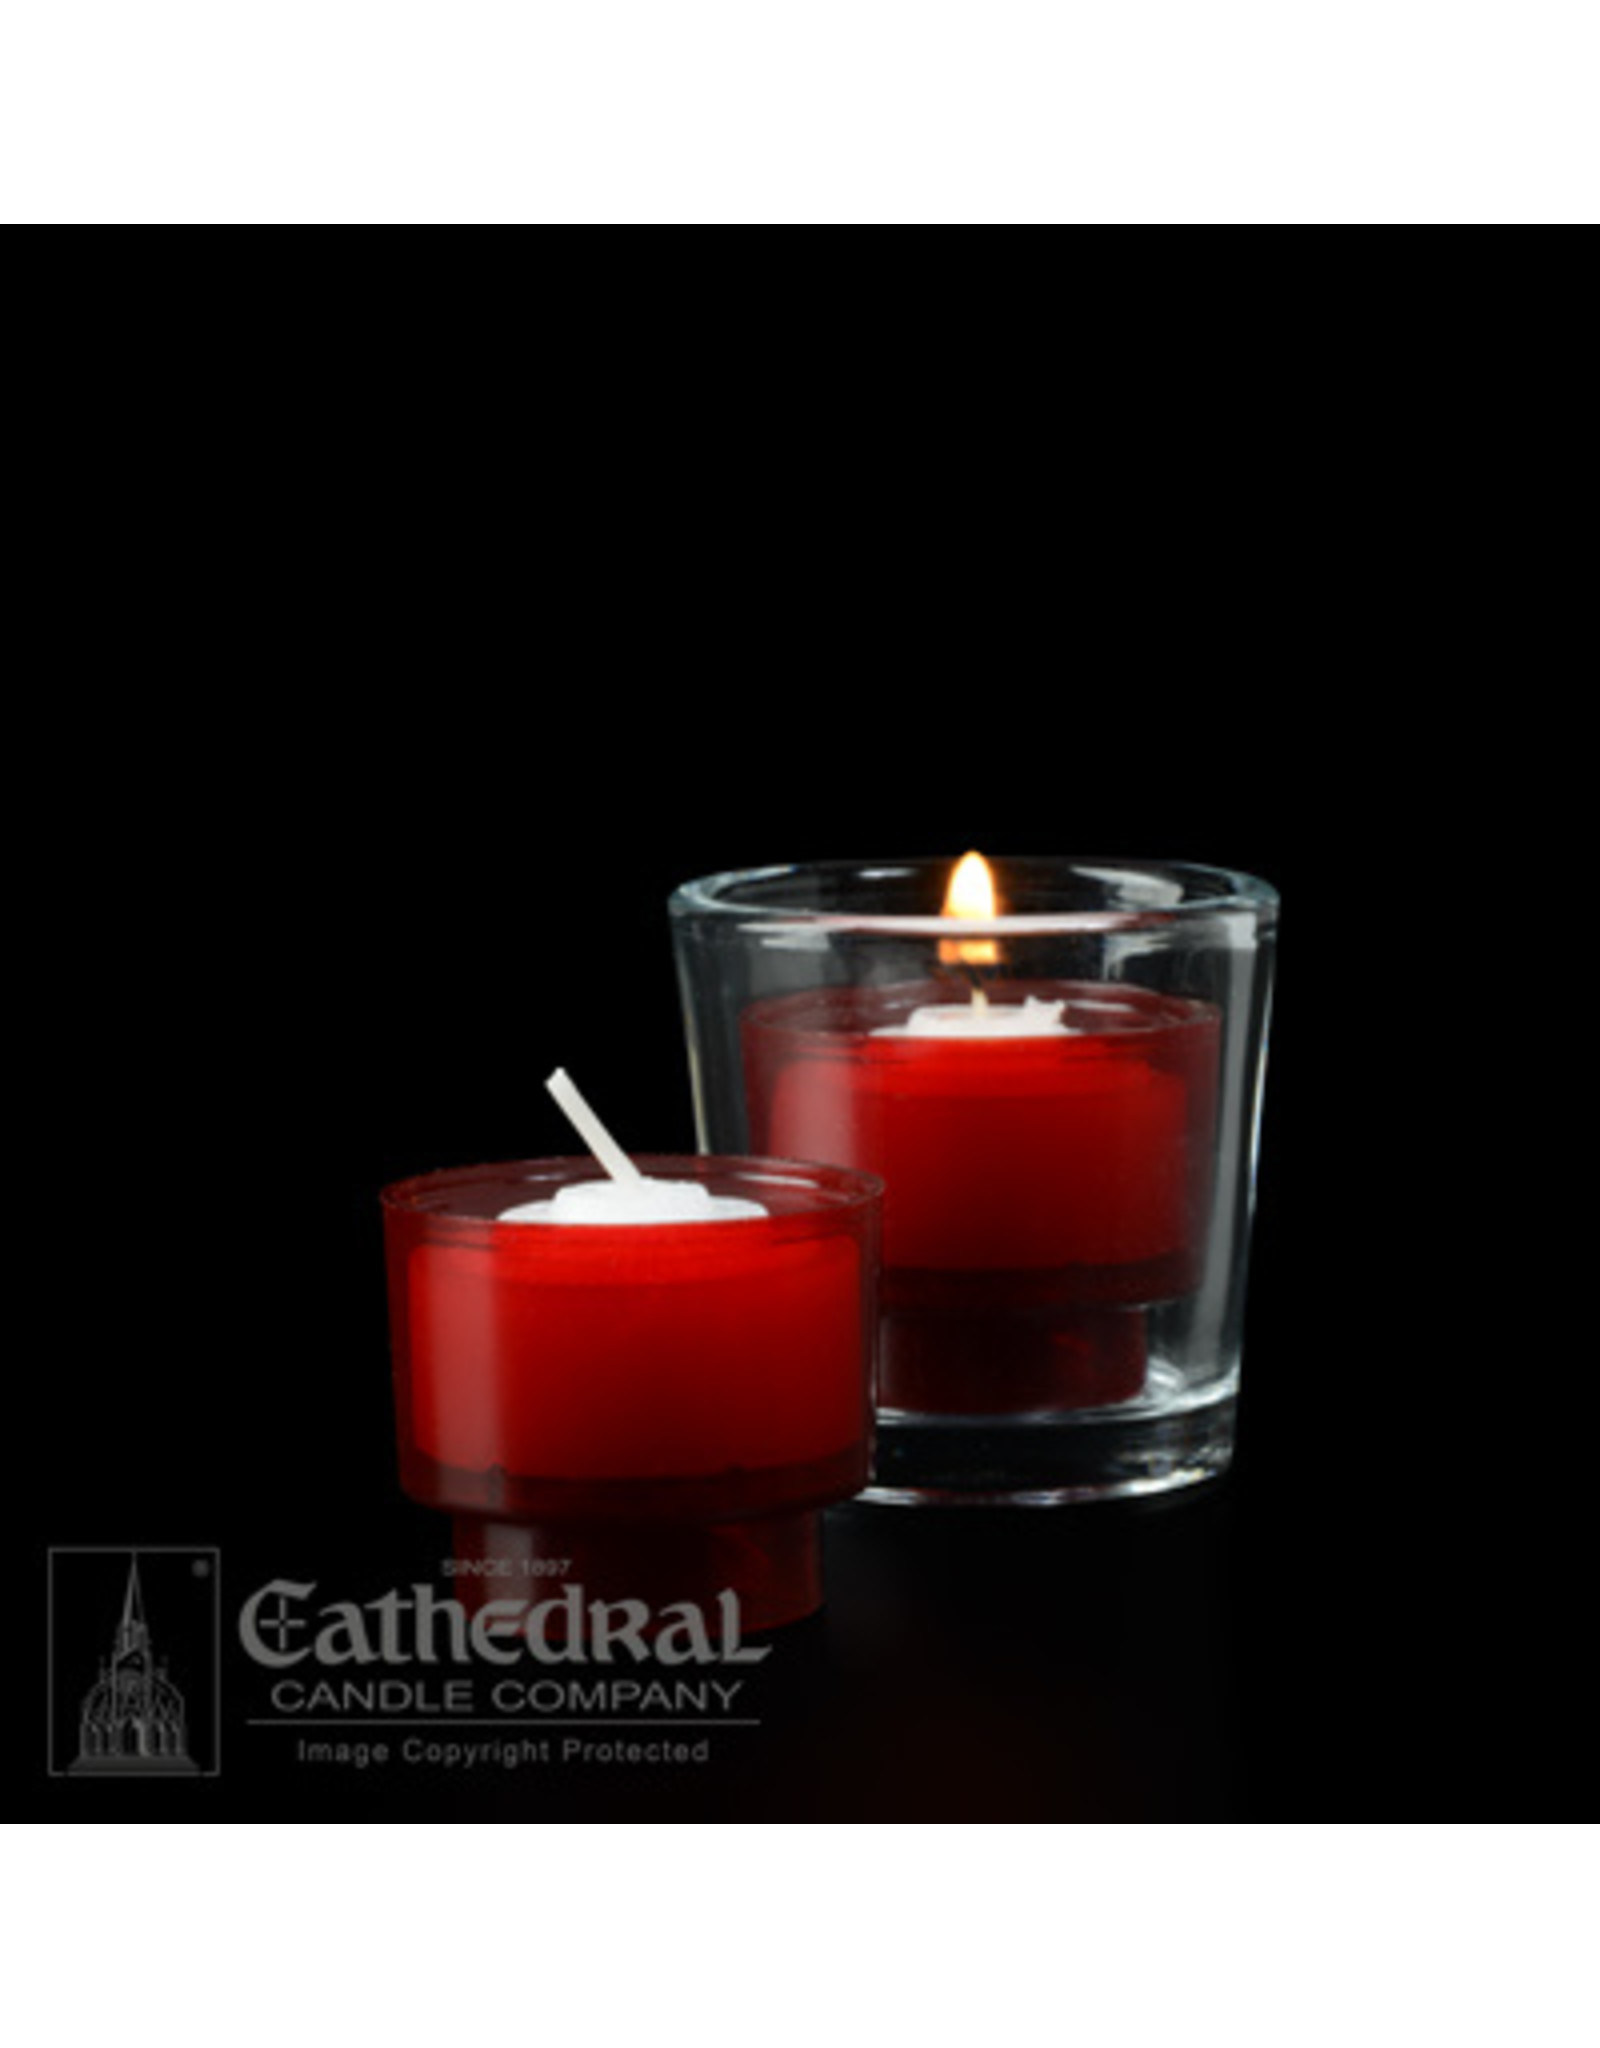 4-Hour Ruby Votive ez-Lite Candles (2 Gross)